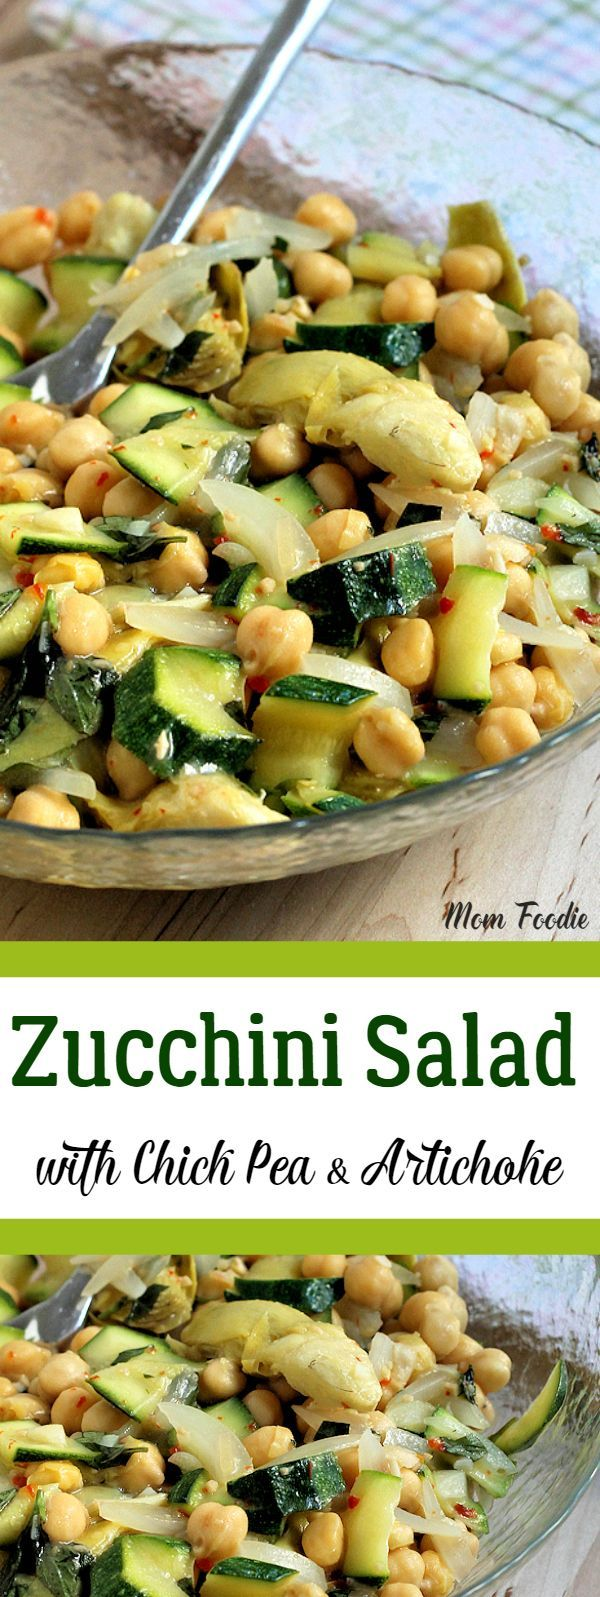 This Zucchini Salad with Chick Pea & Artichoke is what I whipped up for a simple summer dinner tonight. Nope, no in depth recipe planning here, this is fly-by-the-seat-of-your-pants gleaning from the garden and pantry style cooking. The zucchini salad makes for a nice light vegetarian or vegan meal, or a great side for some …